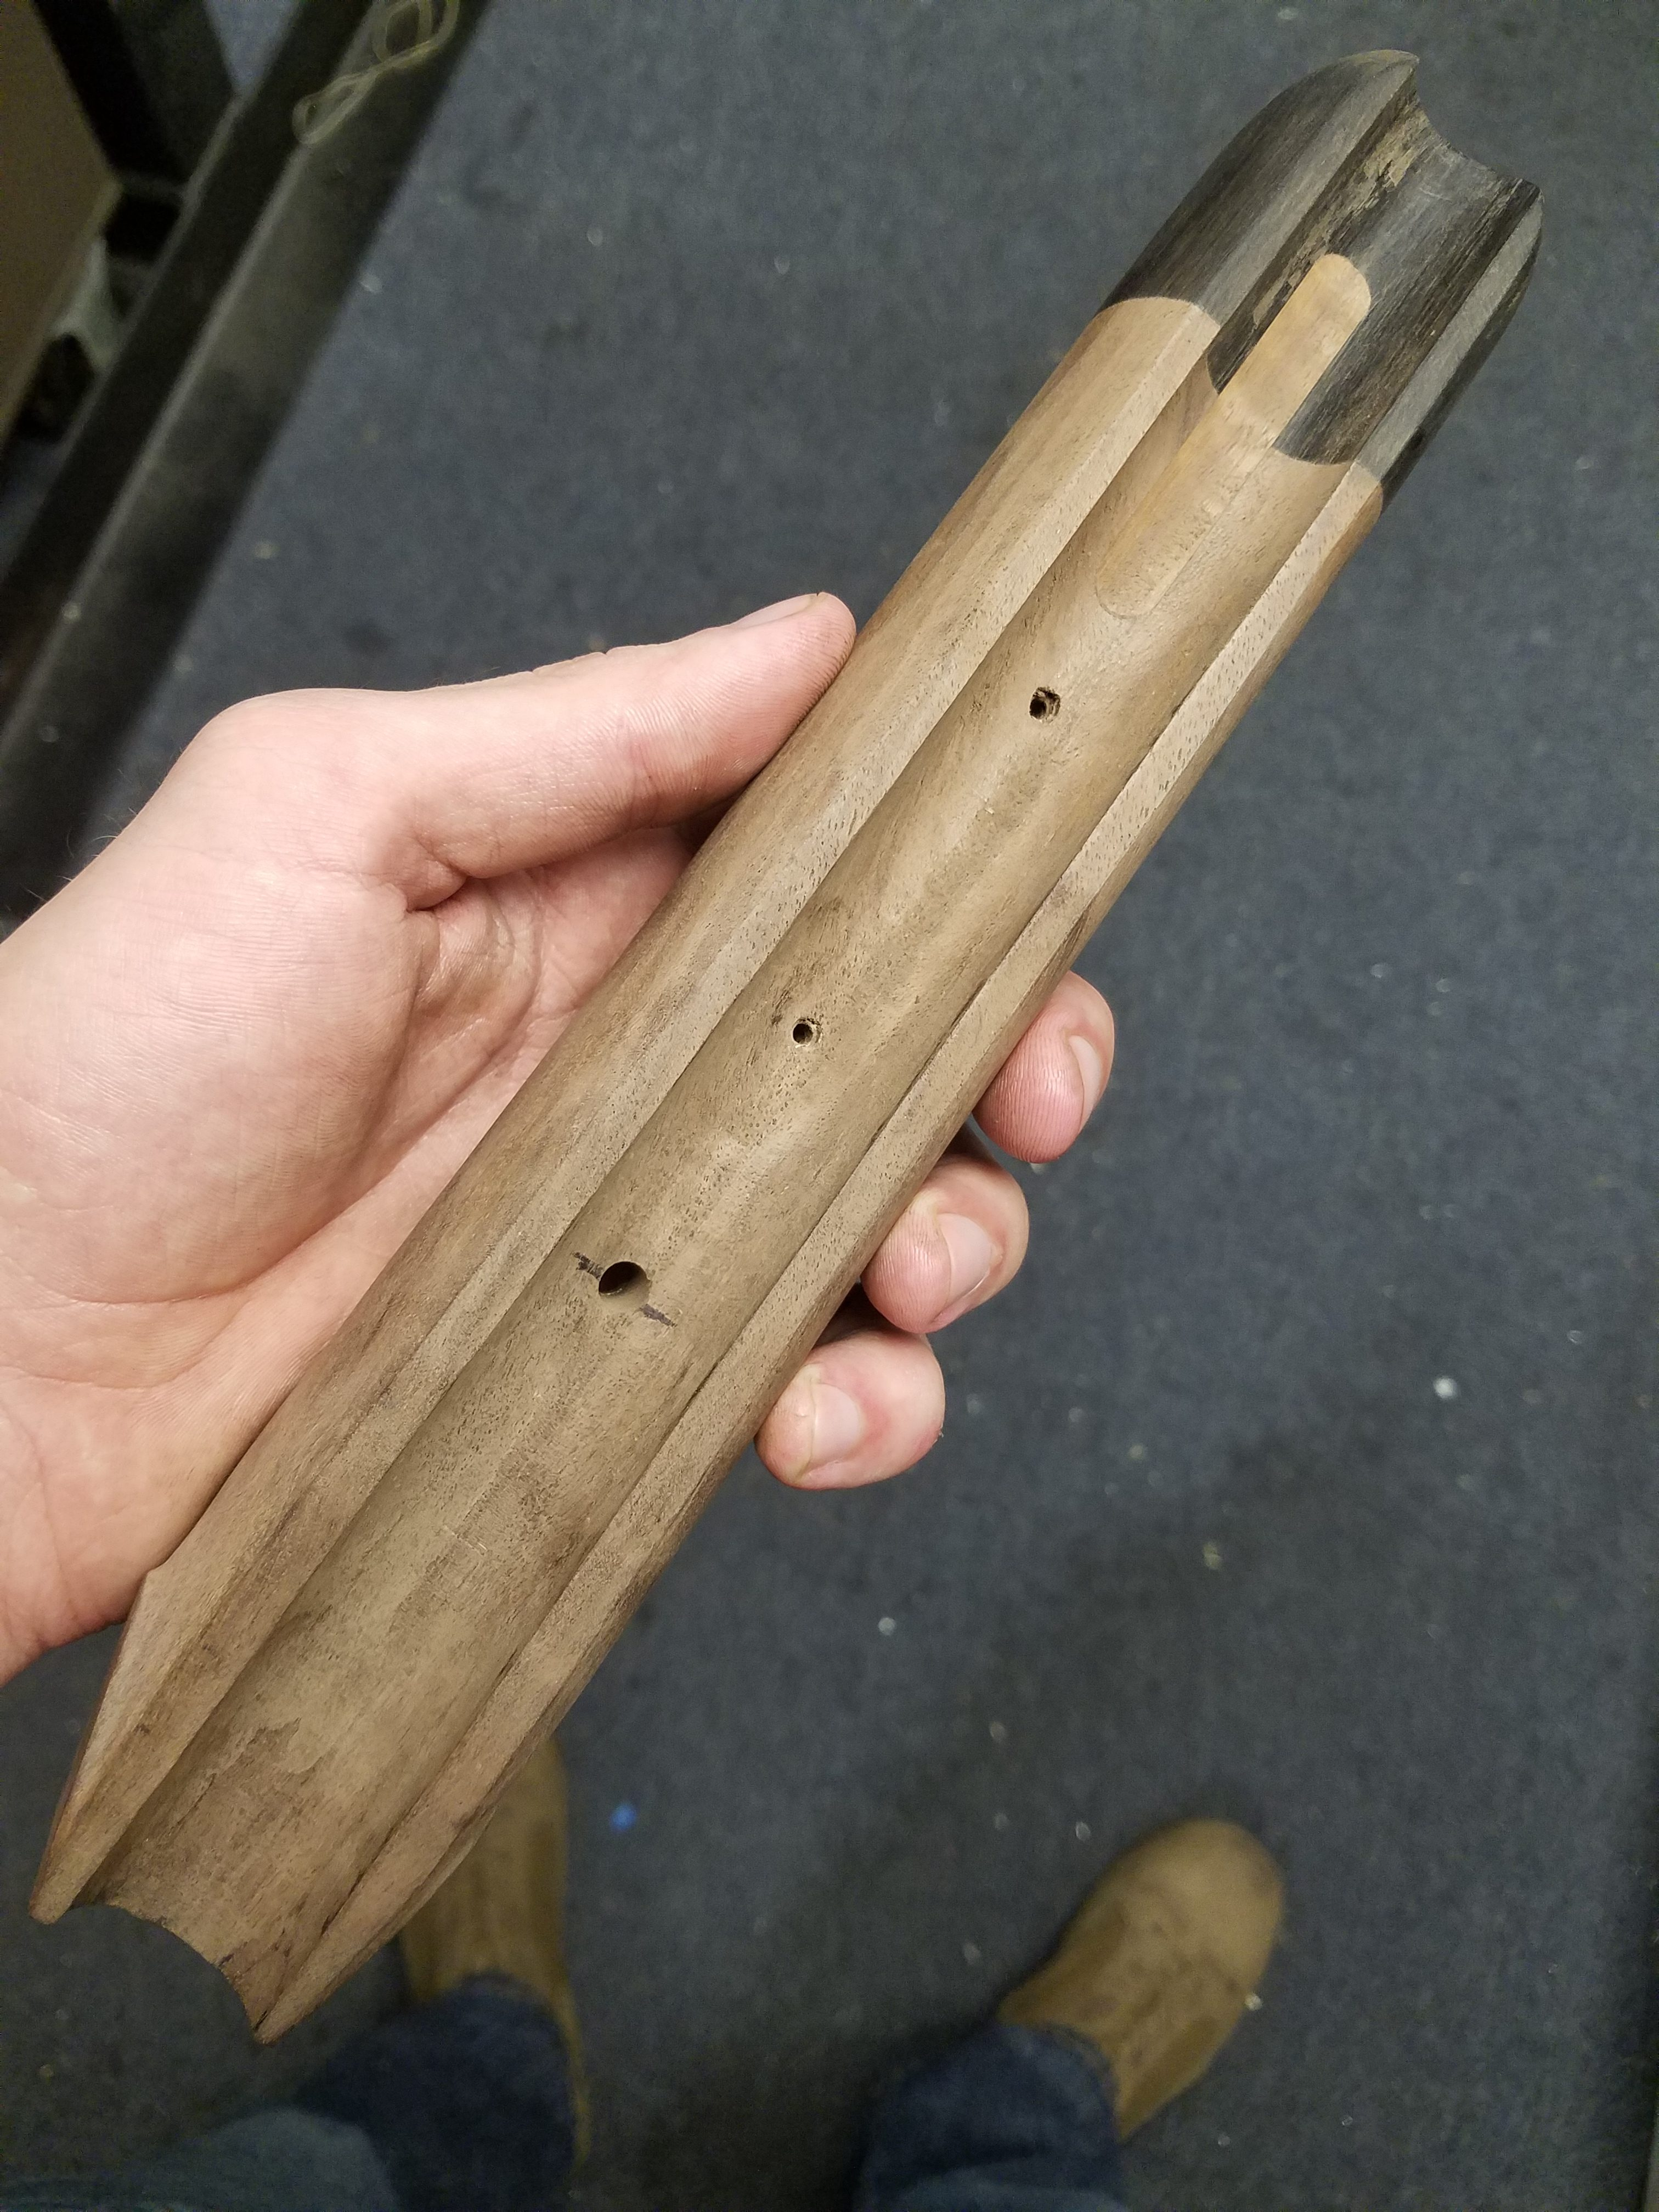 Forend shaping completed on the shotgun